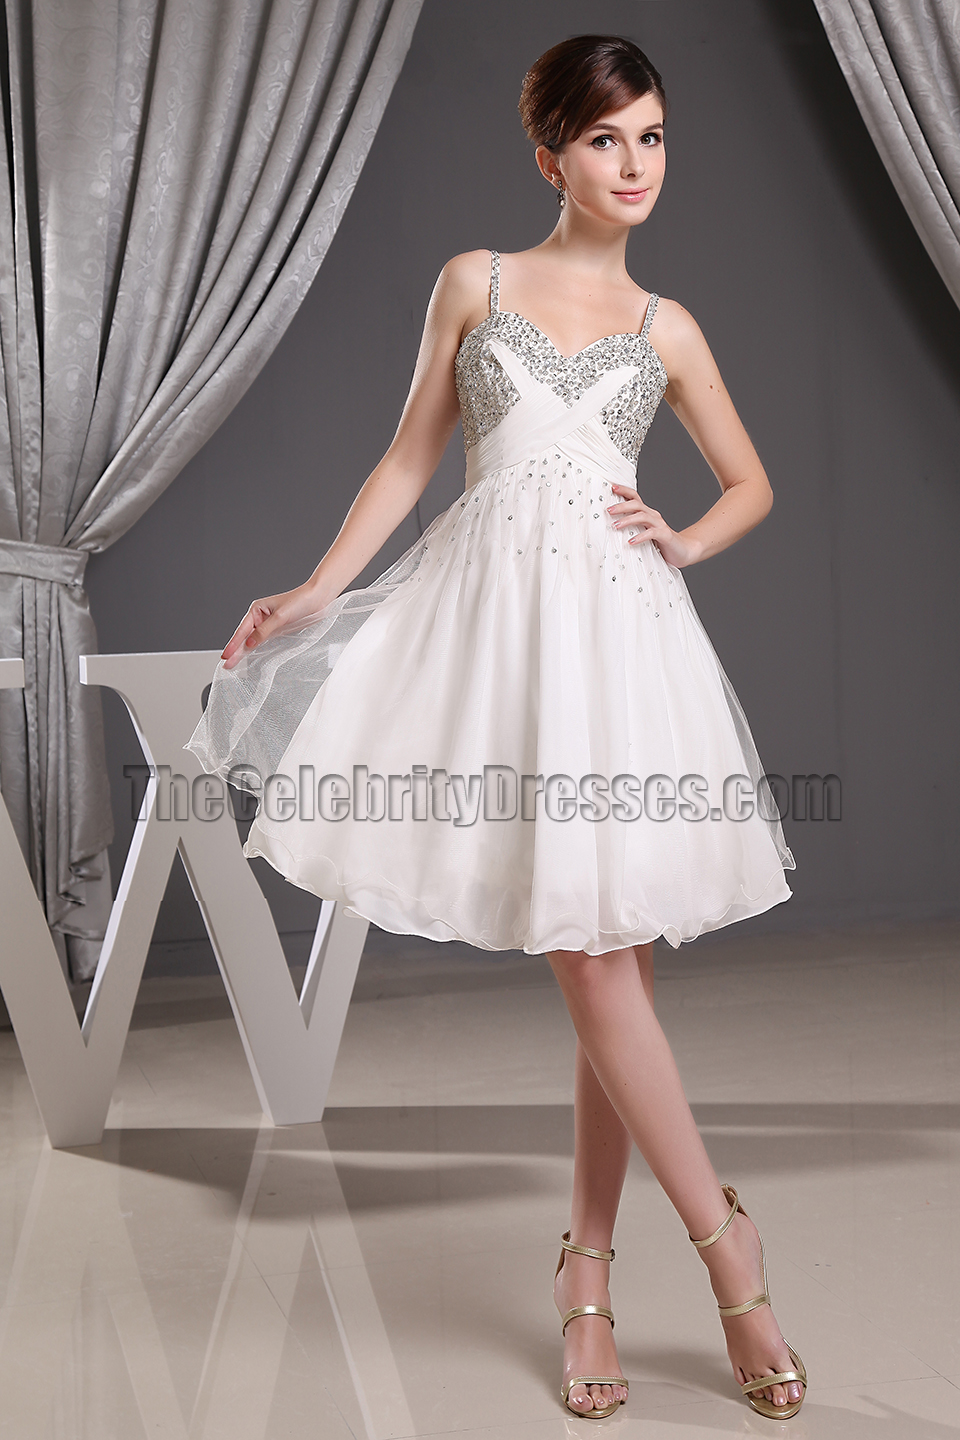 Beaded Short White Chiffon Party Dress Cocktail Homecoming Dresses - TheCelebrityDresses